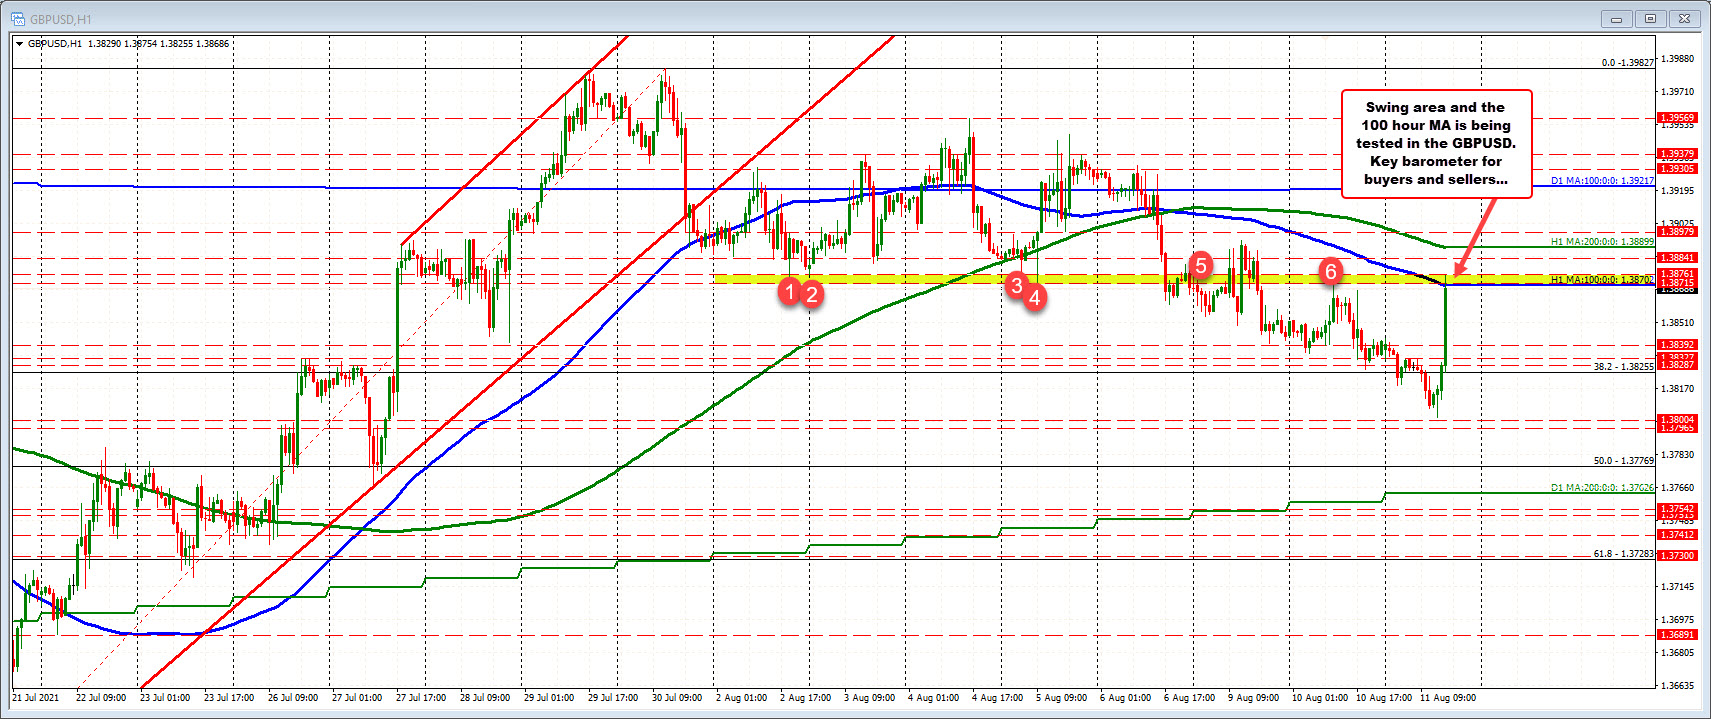 Swing area and the 100 hour MA being tested